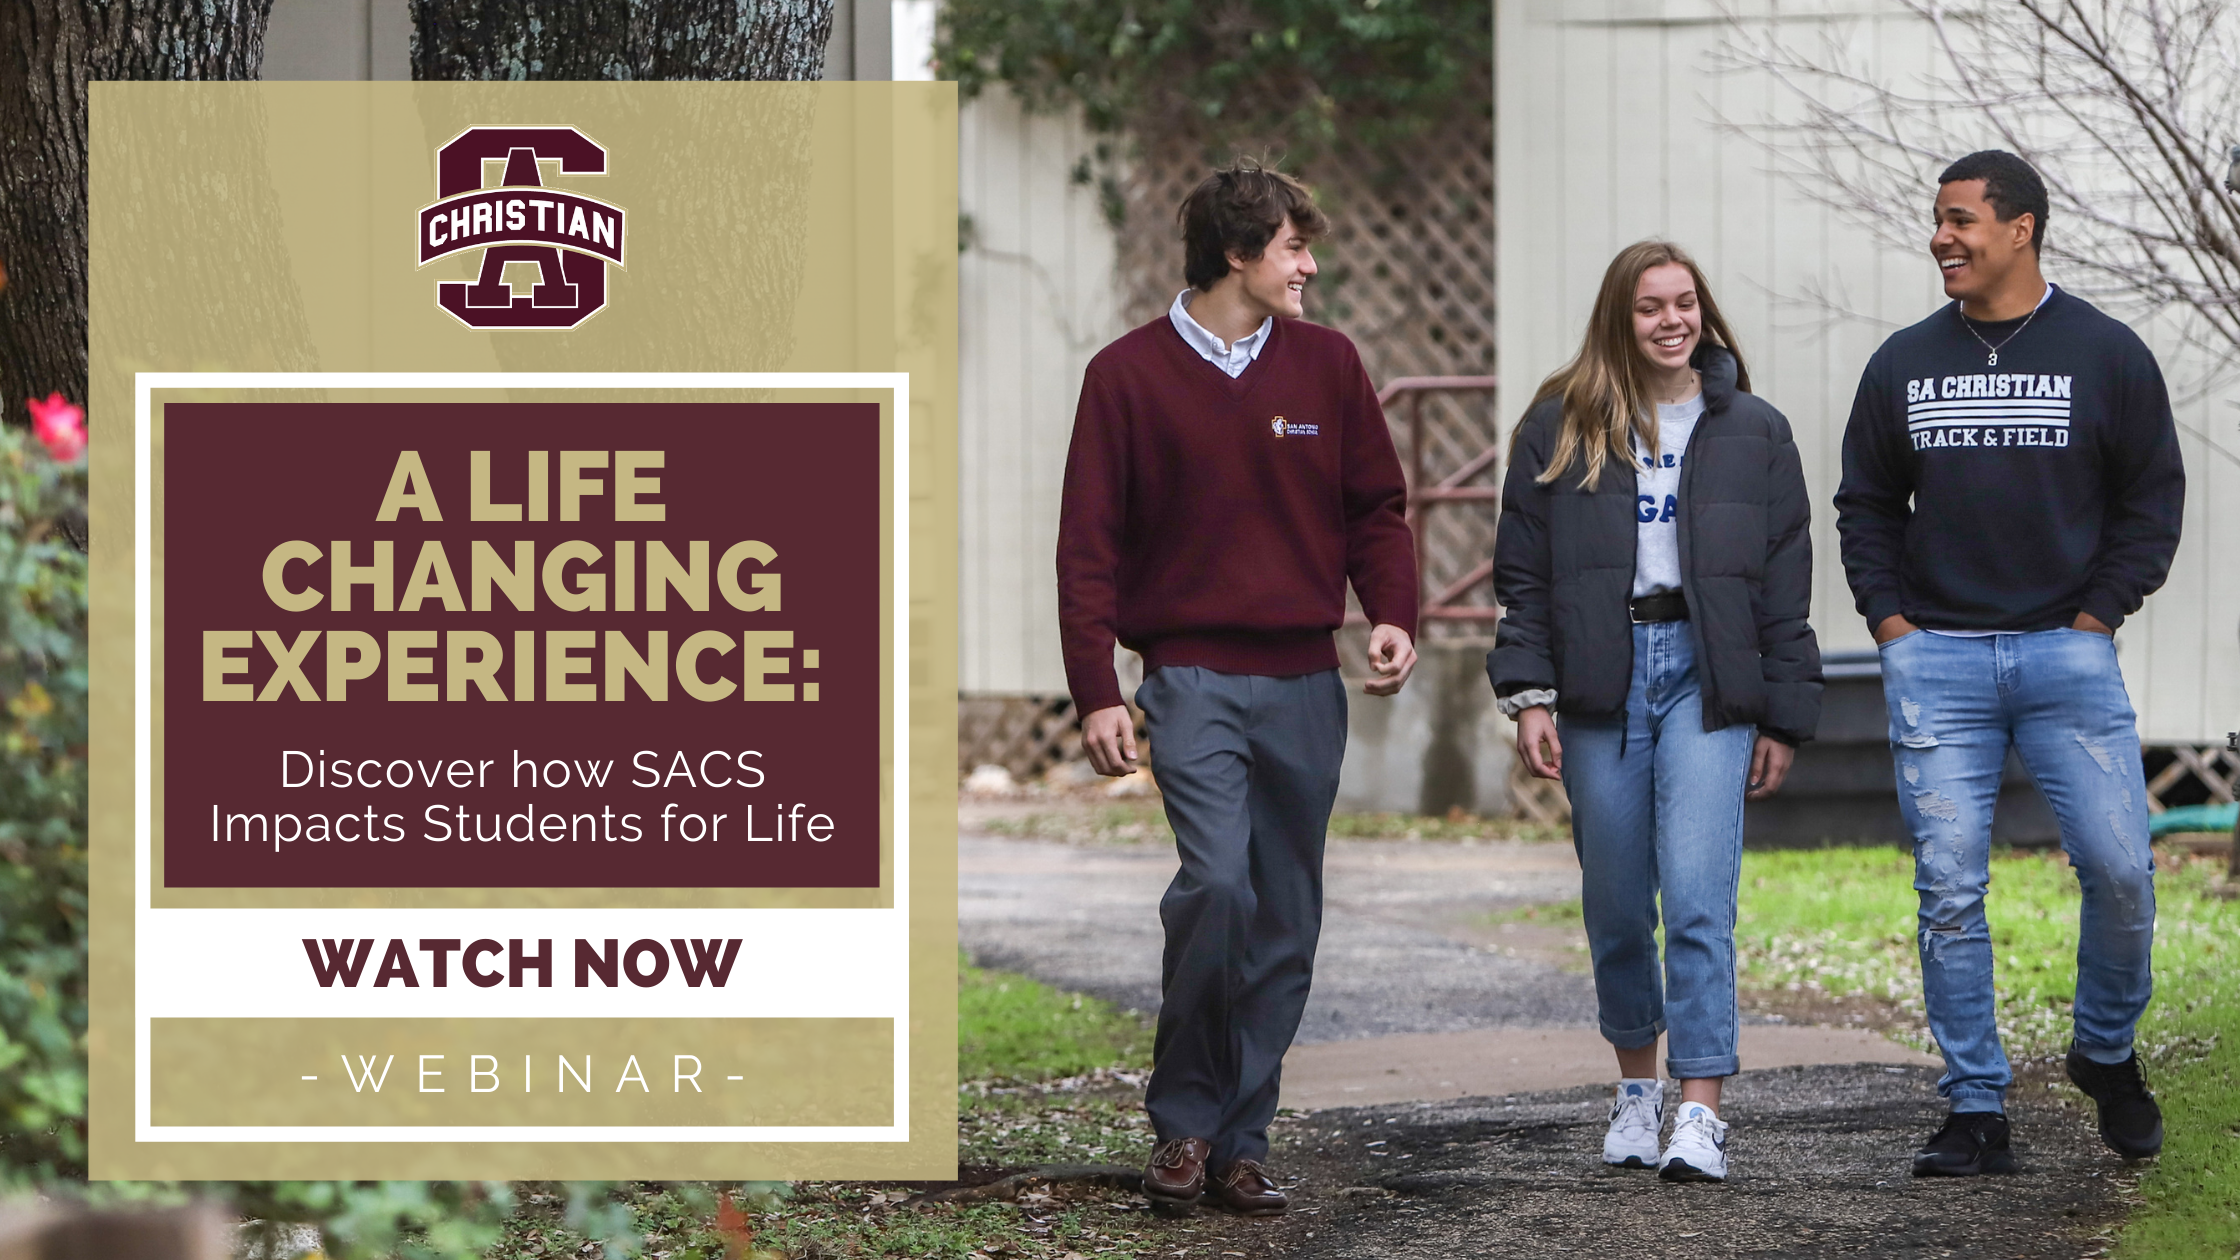 SACS A Life Changing Experience (4)